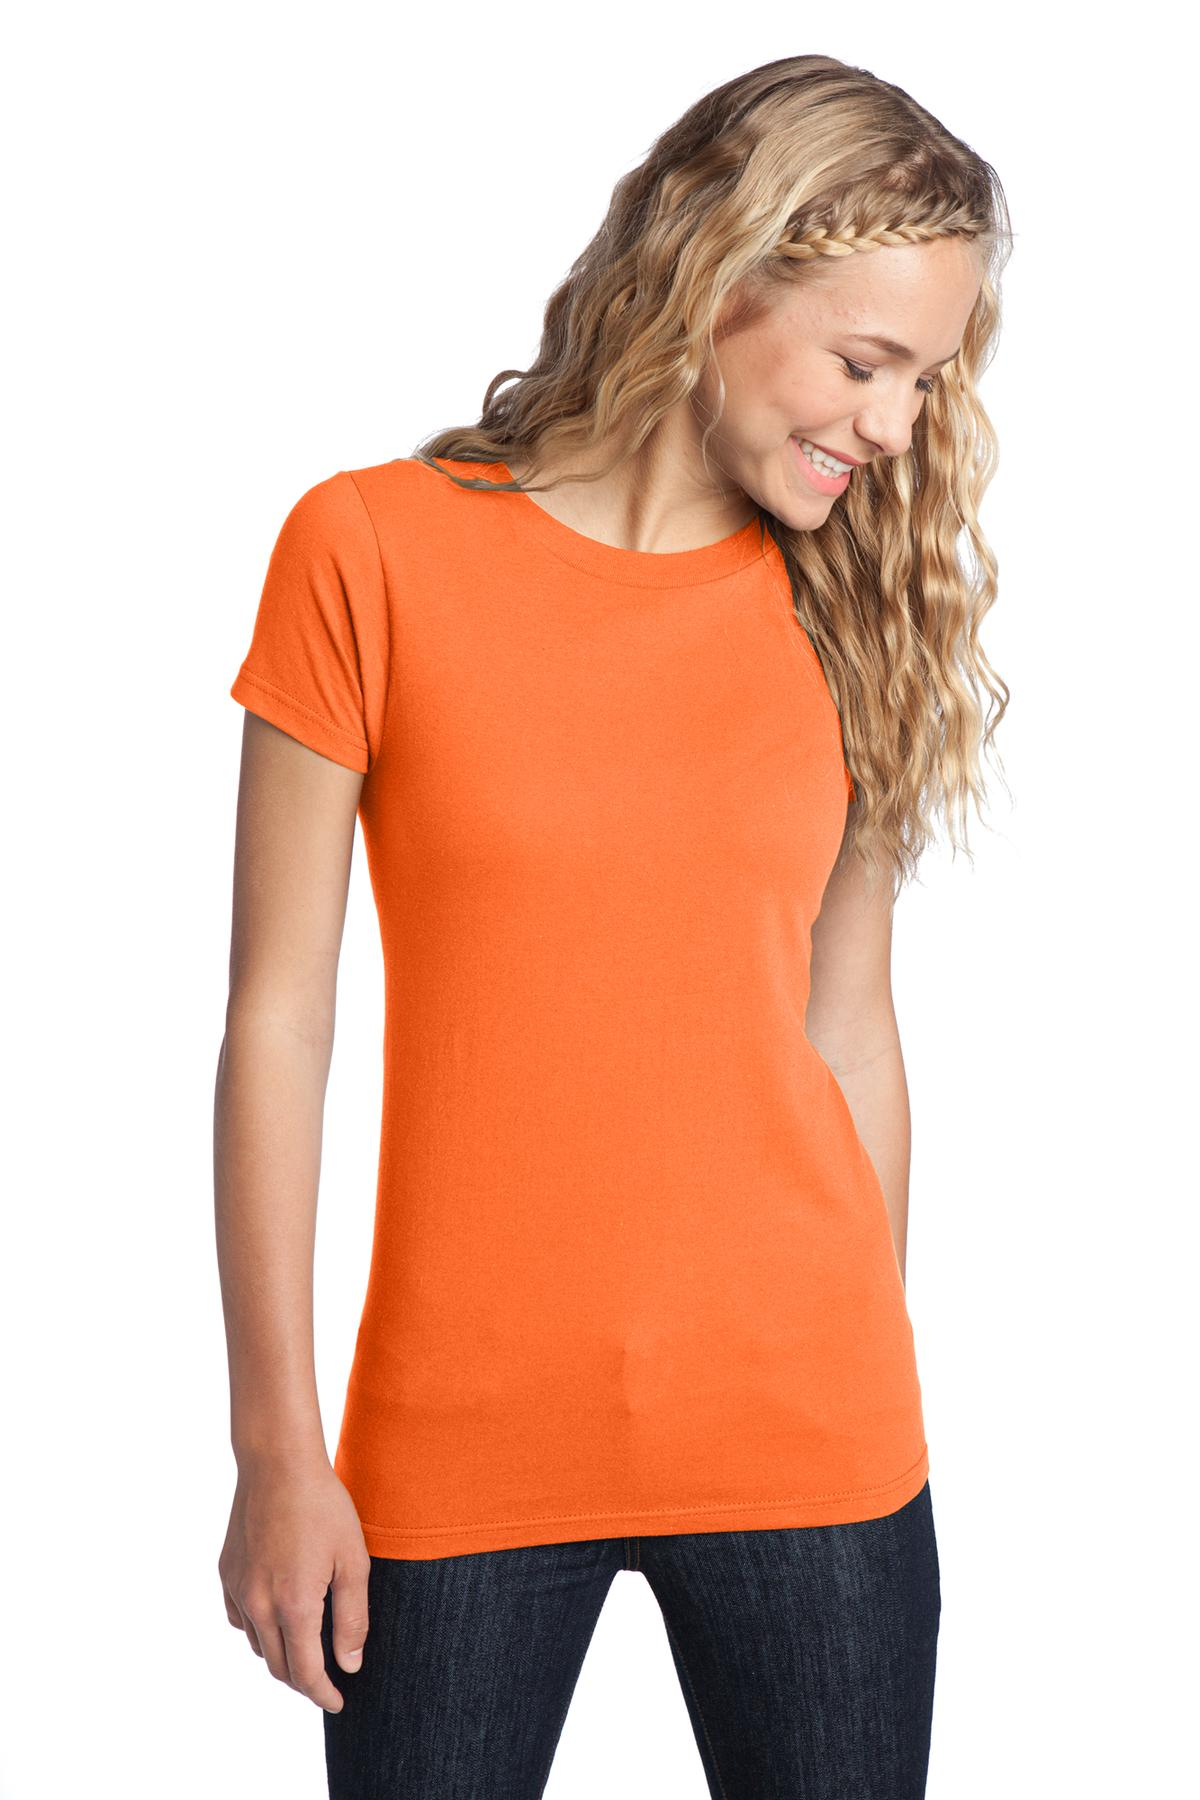 District ®  Women's Fitted The Concert Tee ®  DT5001 - Neon Orange